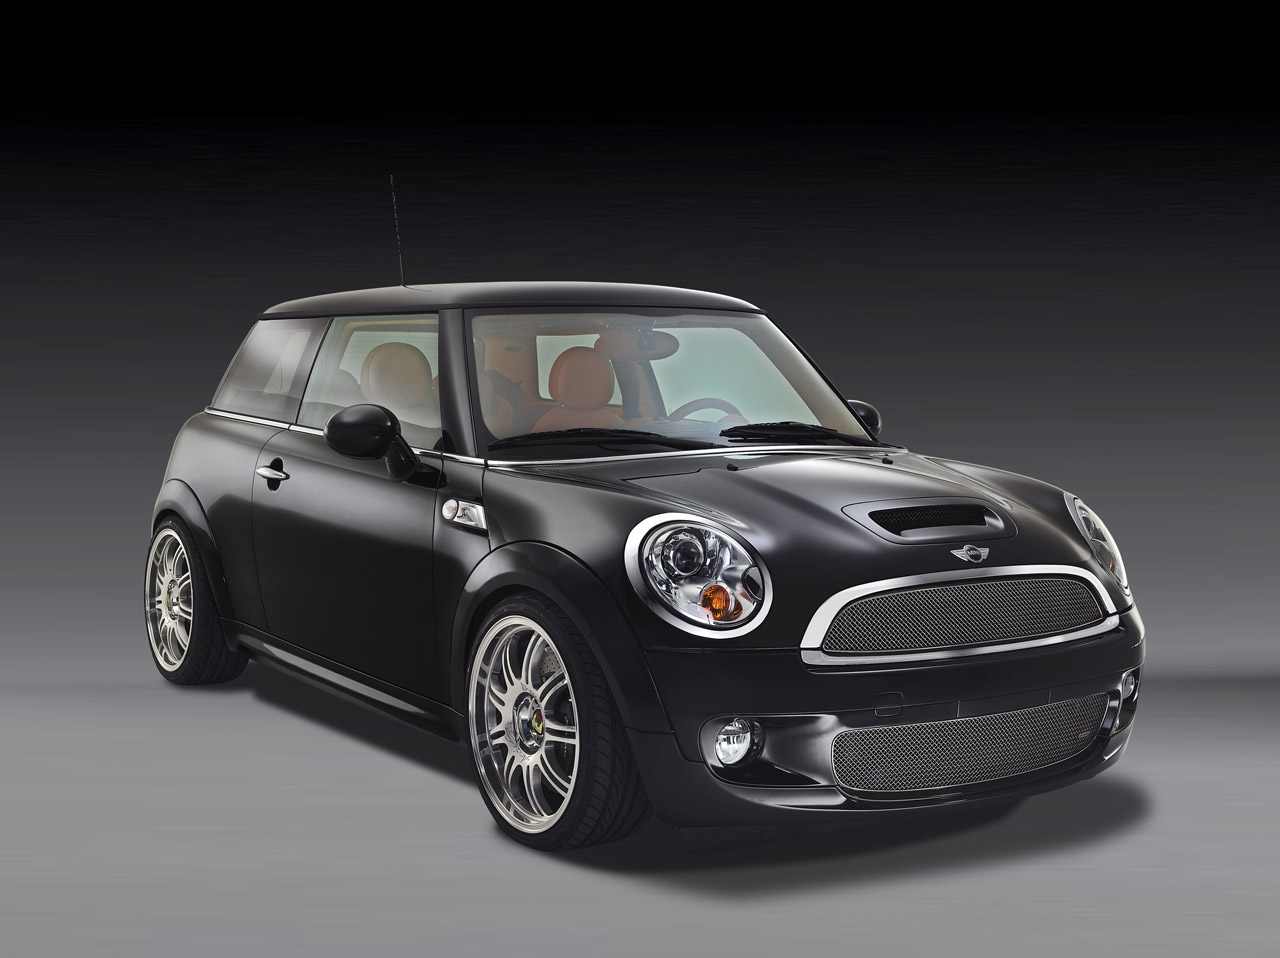 Safety Door Design Home Mini Cooper Classic Cars